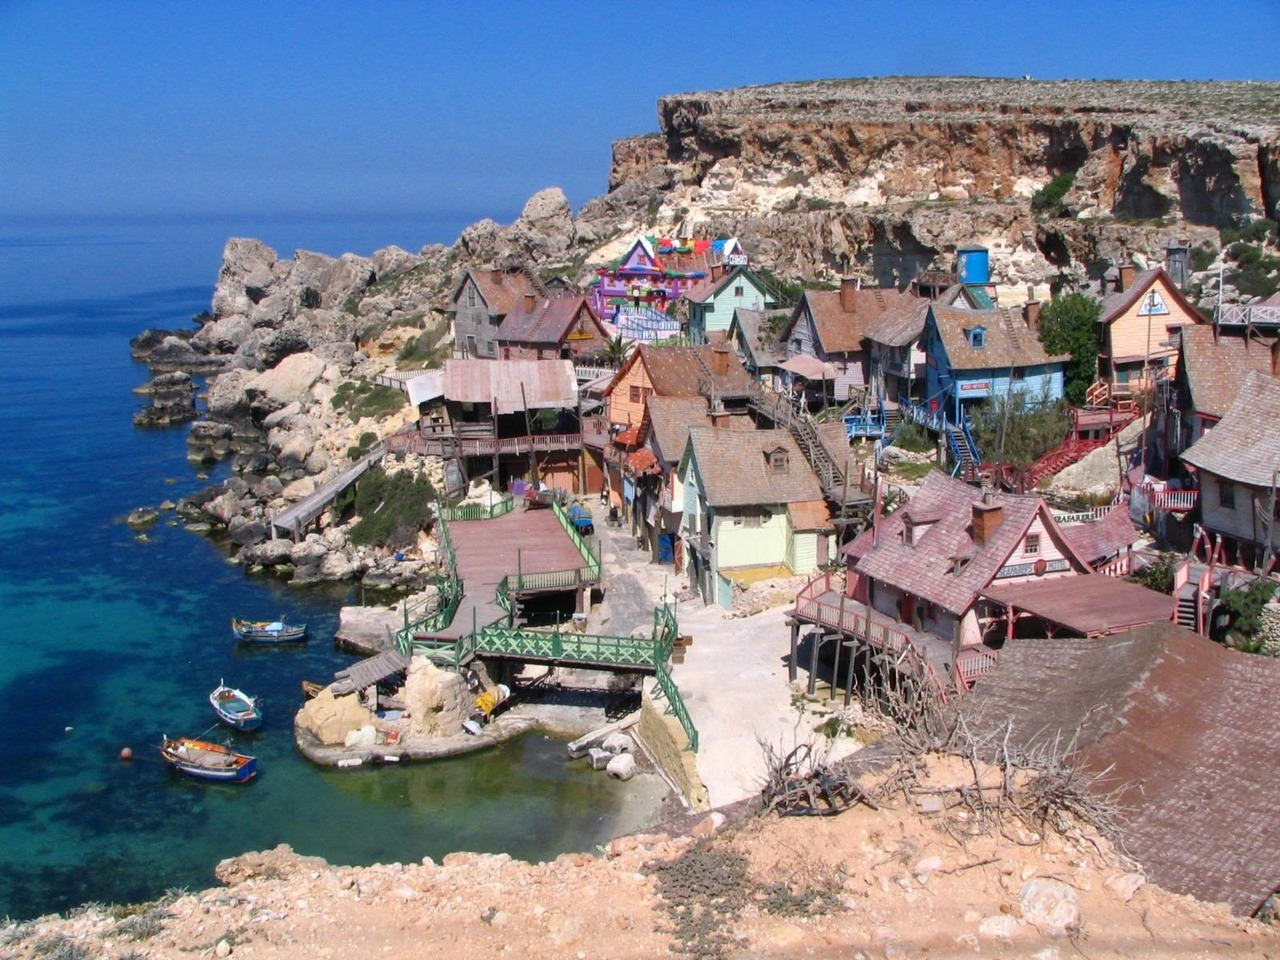 8-bit-tails:  Oh I miss Popeye village, used to visit there so much as a kid, the last time I went it had become so run down though ahh =[  Cool place